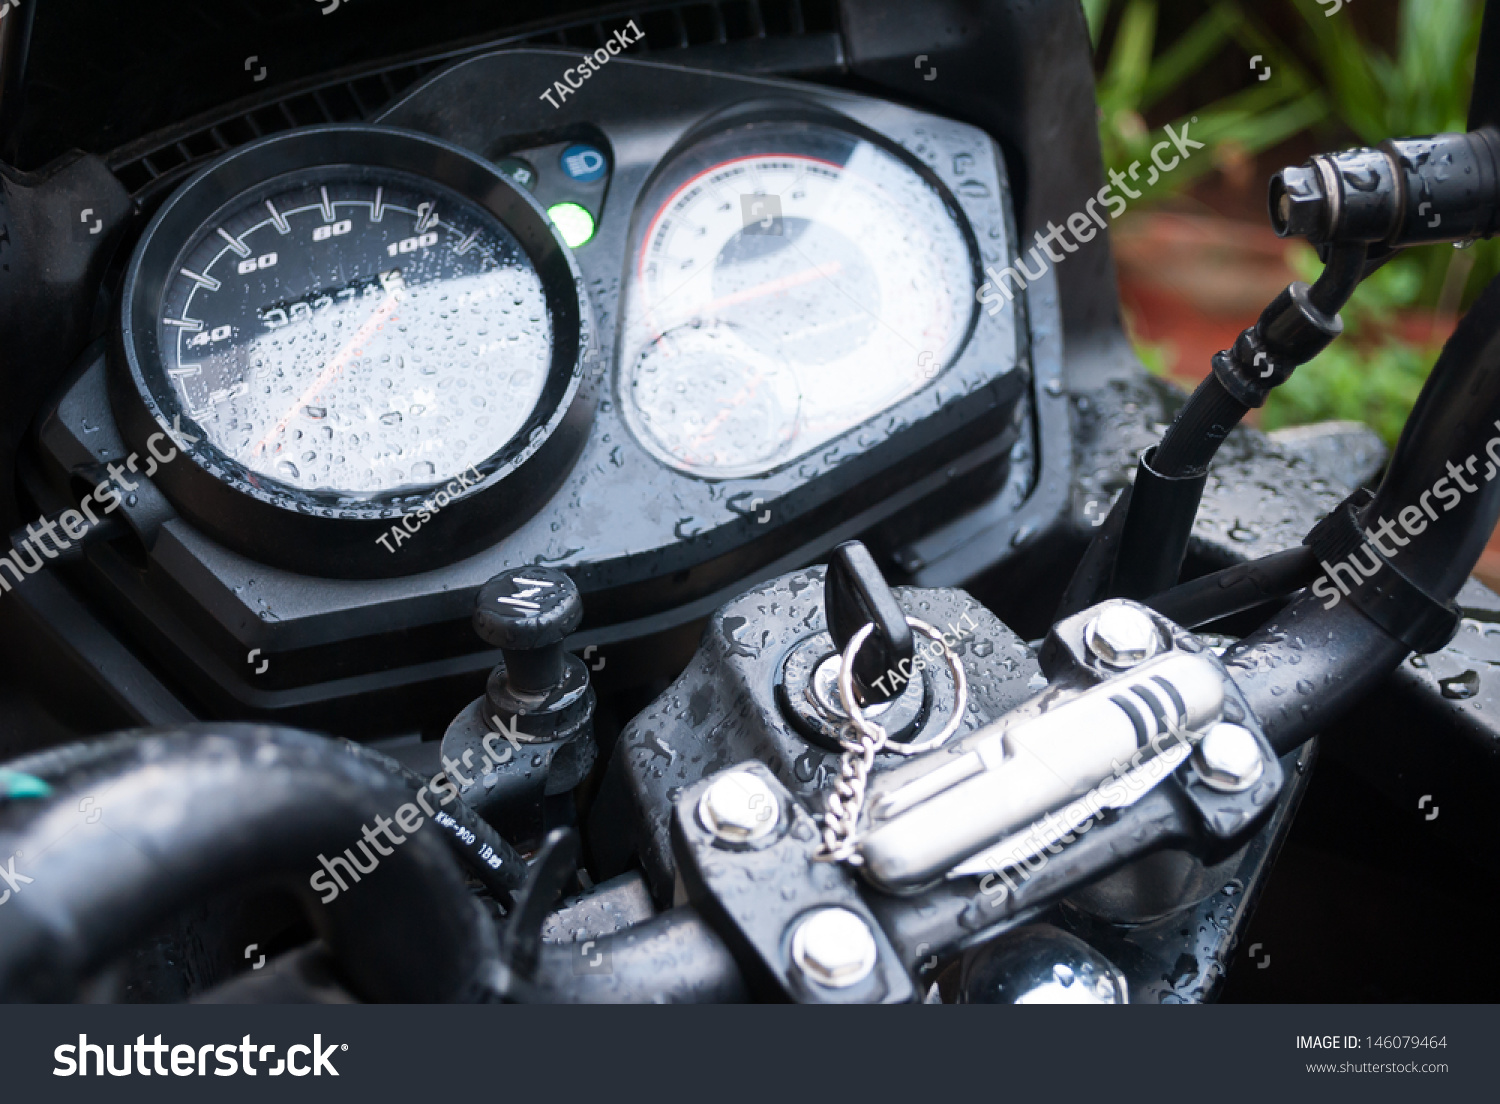 Motor Bike Odometer Fuel Meter Tachometer Stock Photo